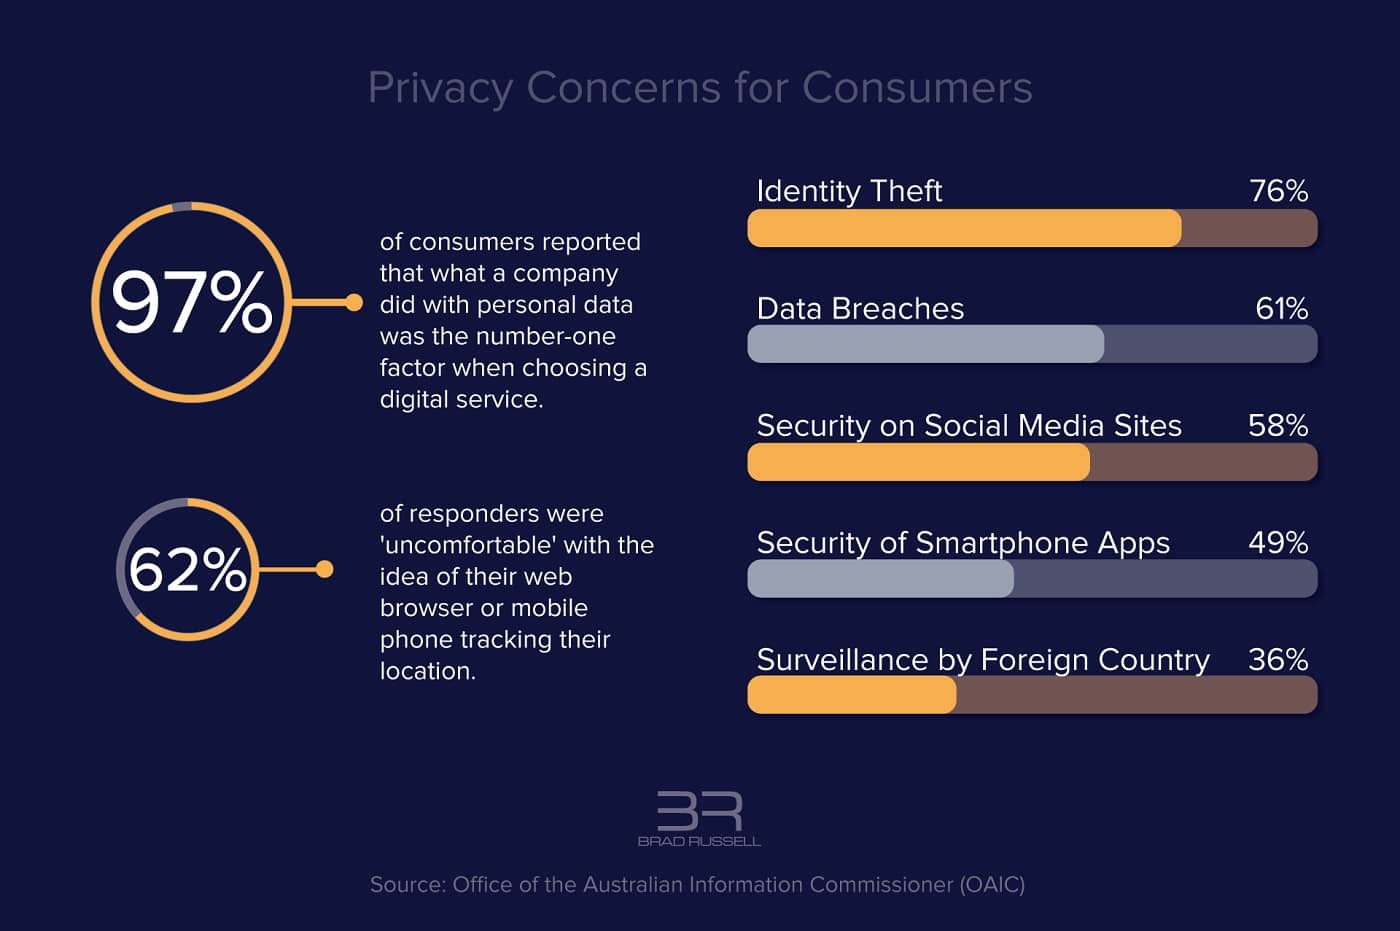 The top privacy concerns for consumers